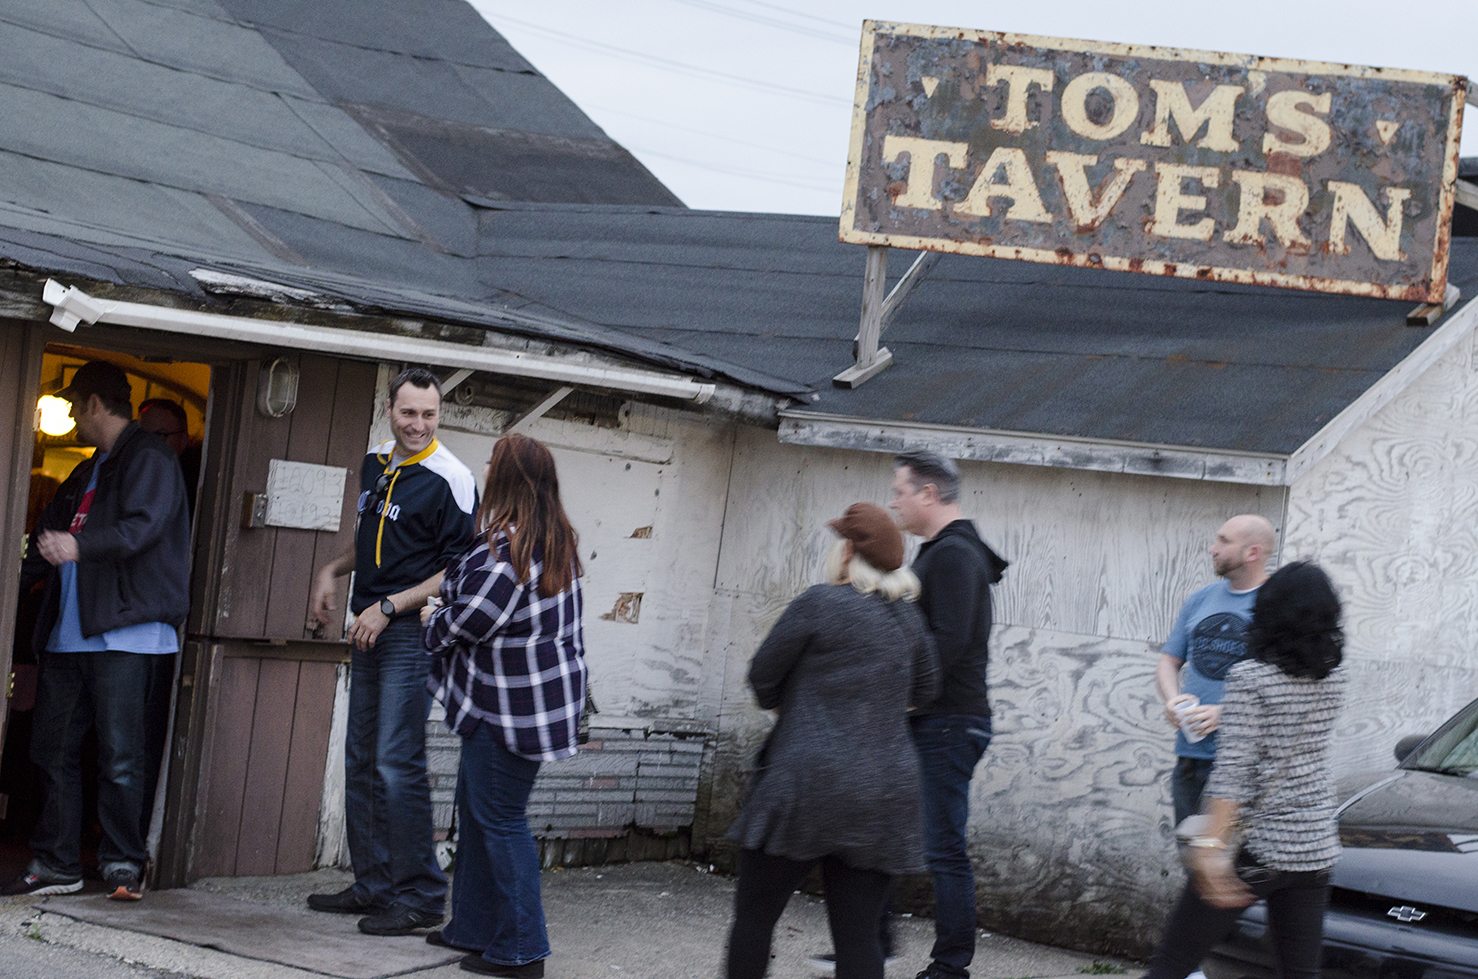 Yes. Tom's Tavern is an actual functioning bar in Detroit and it is amazing!